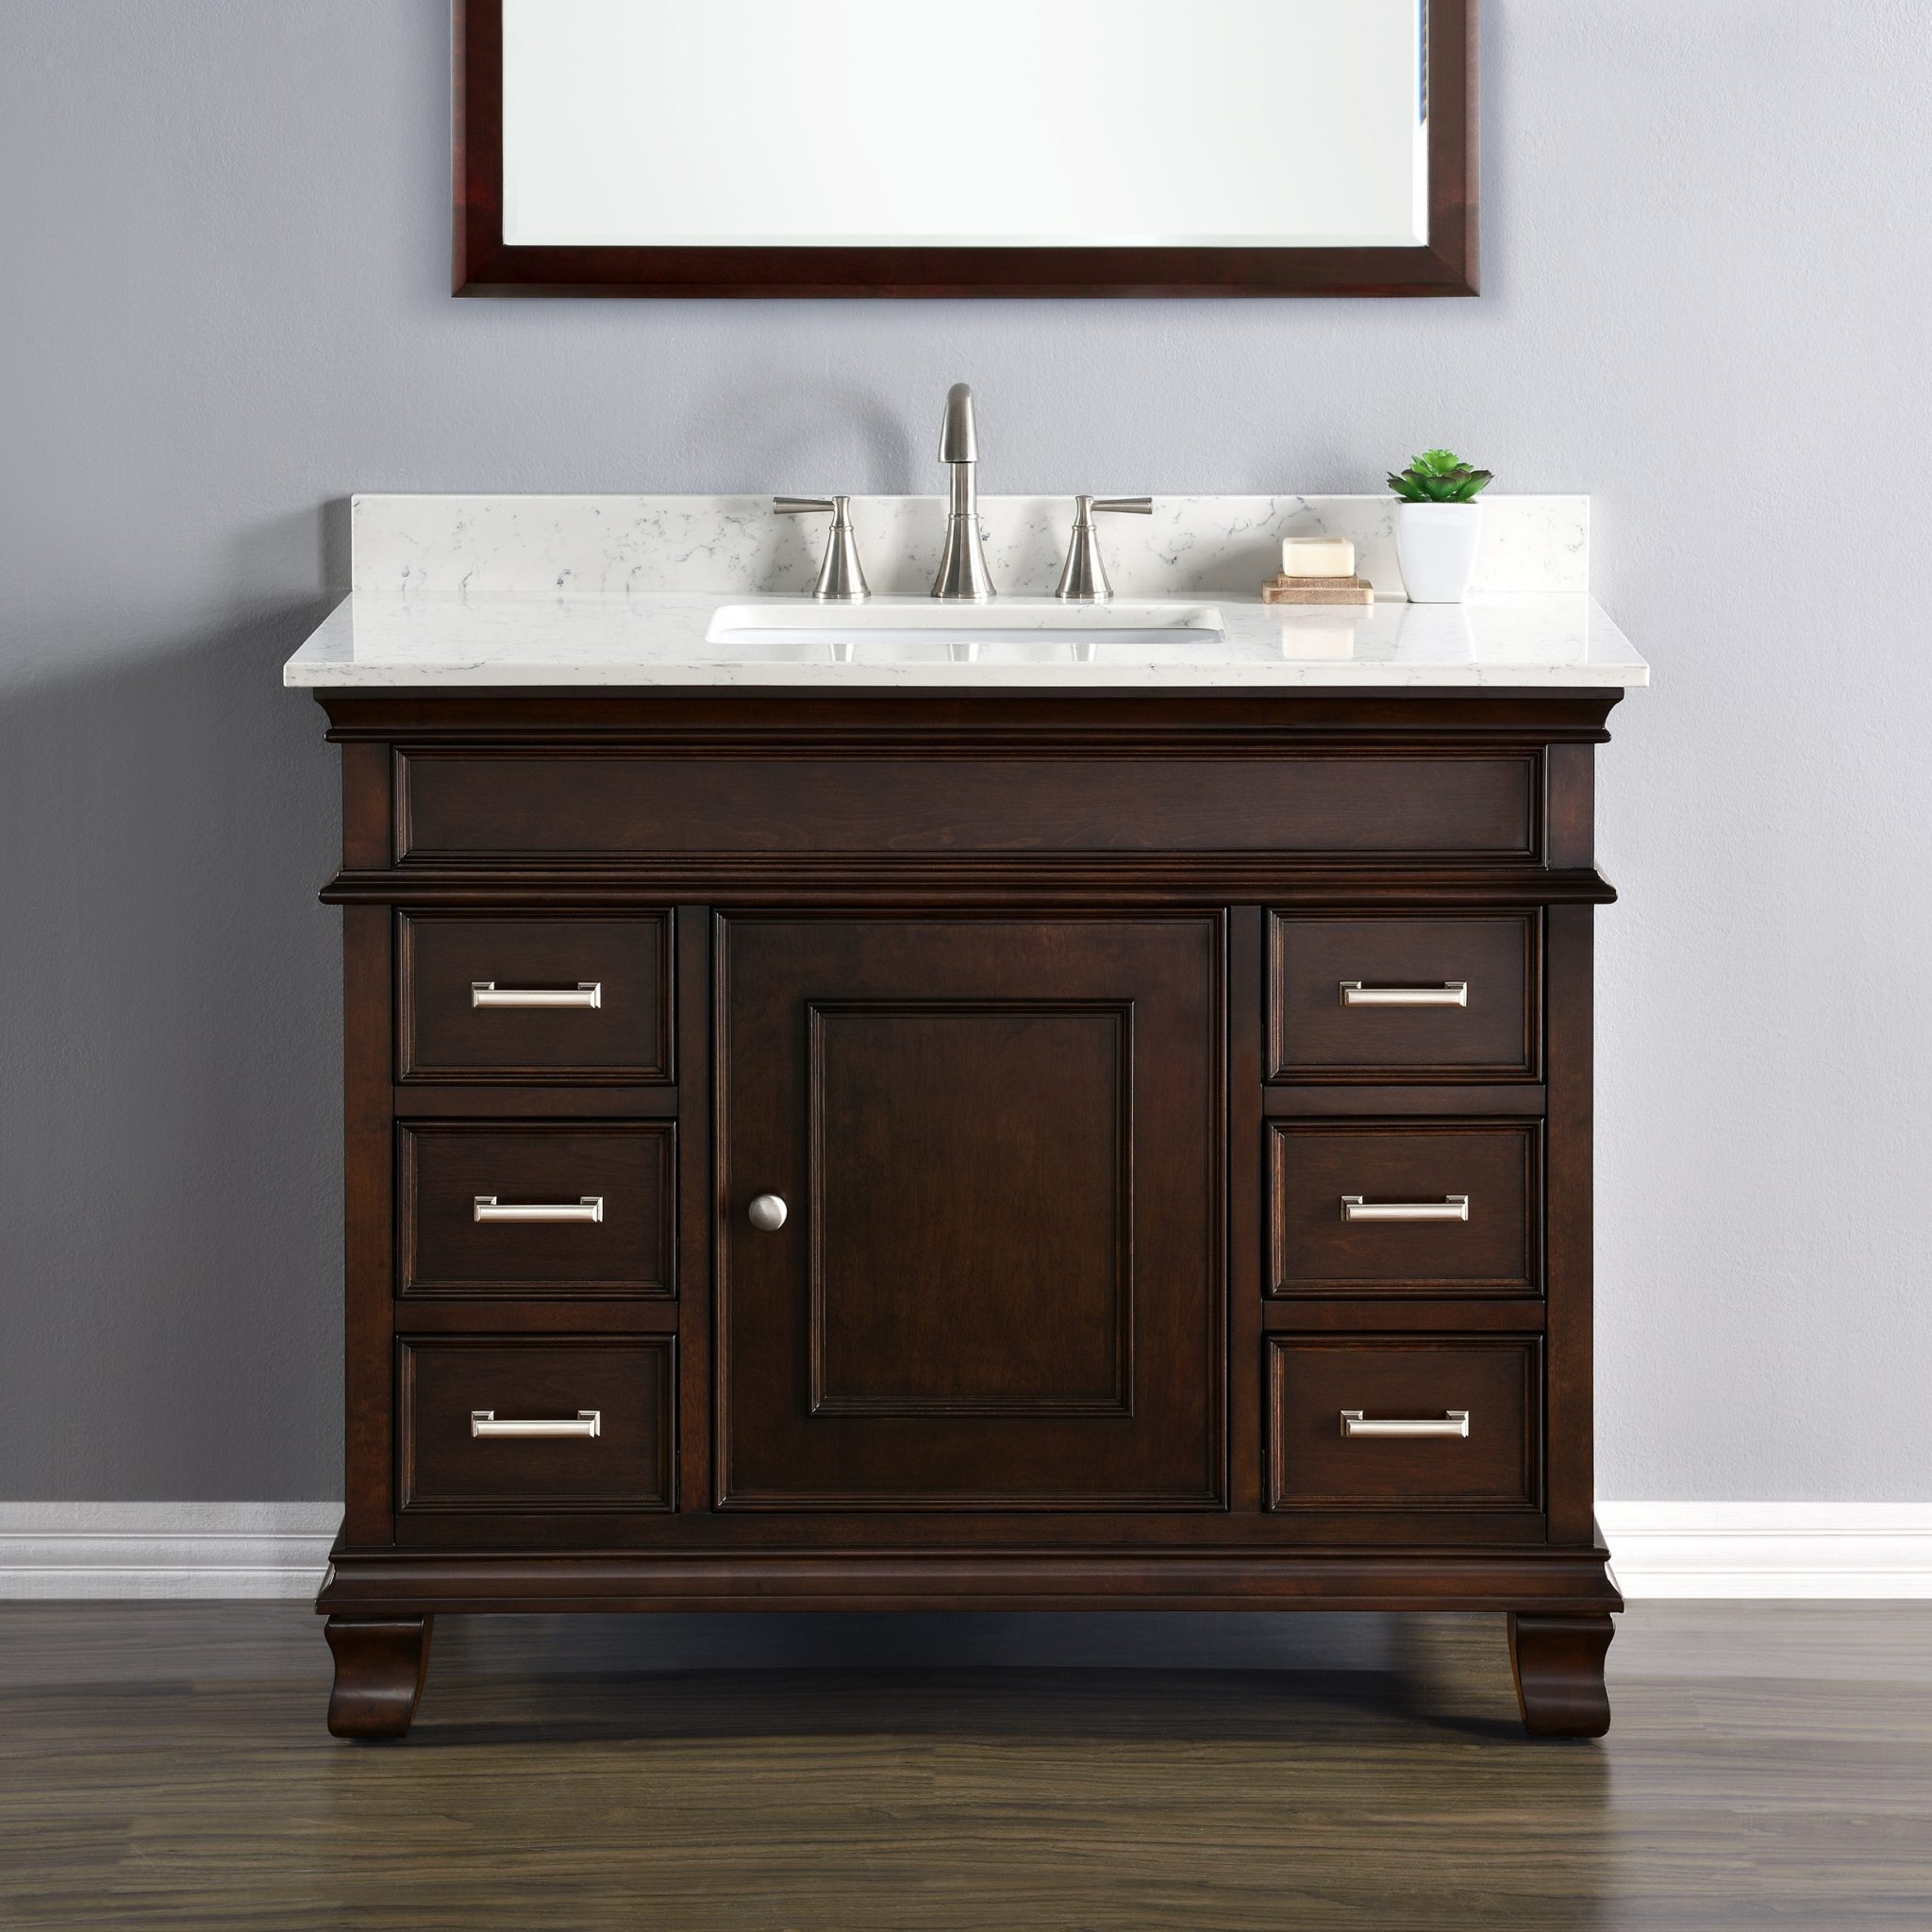 Sink Furniture bedroom design quotes House Designer